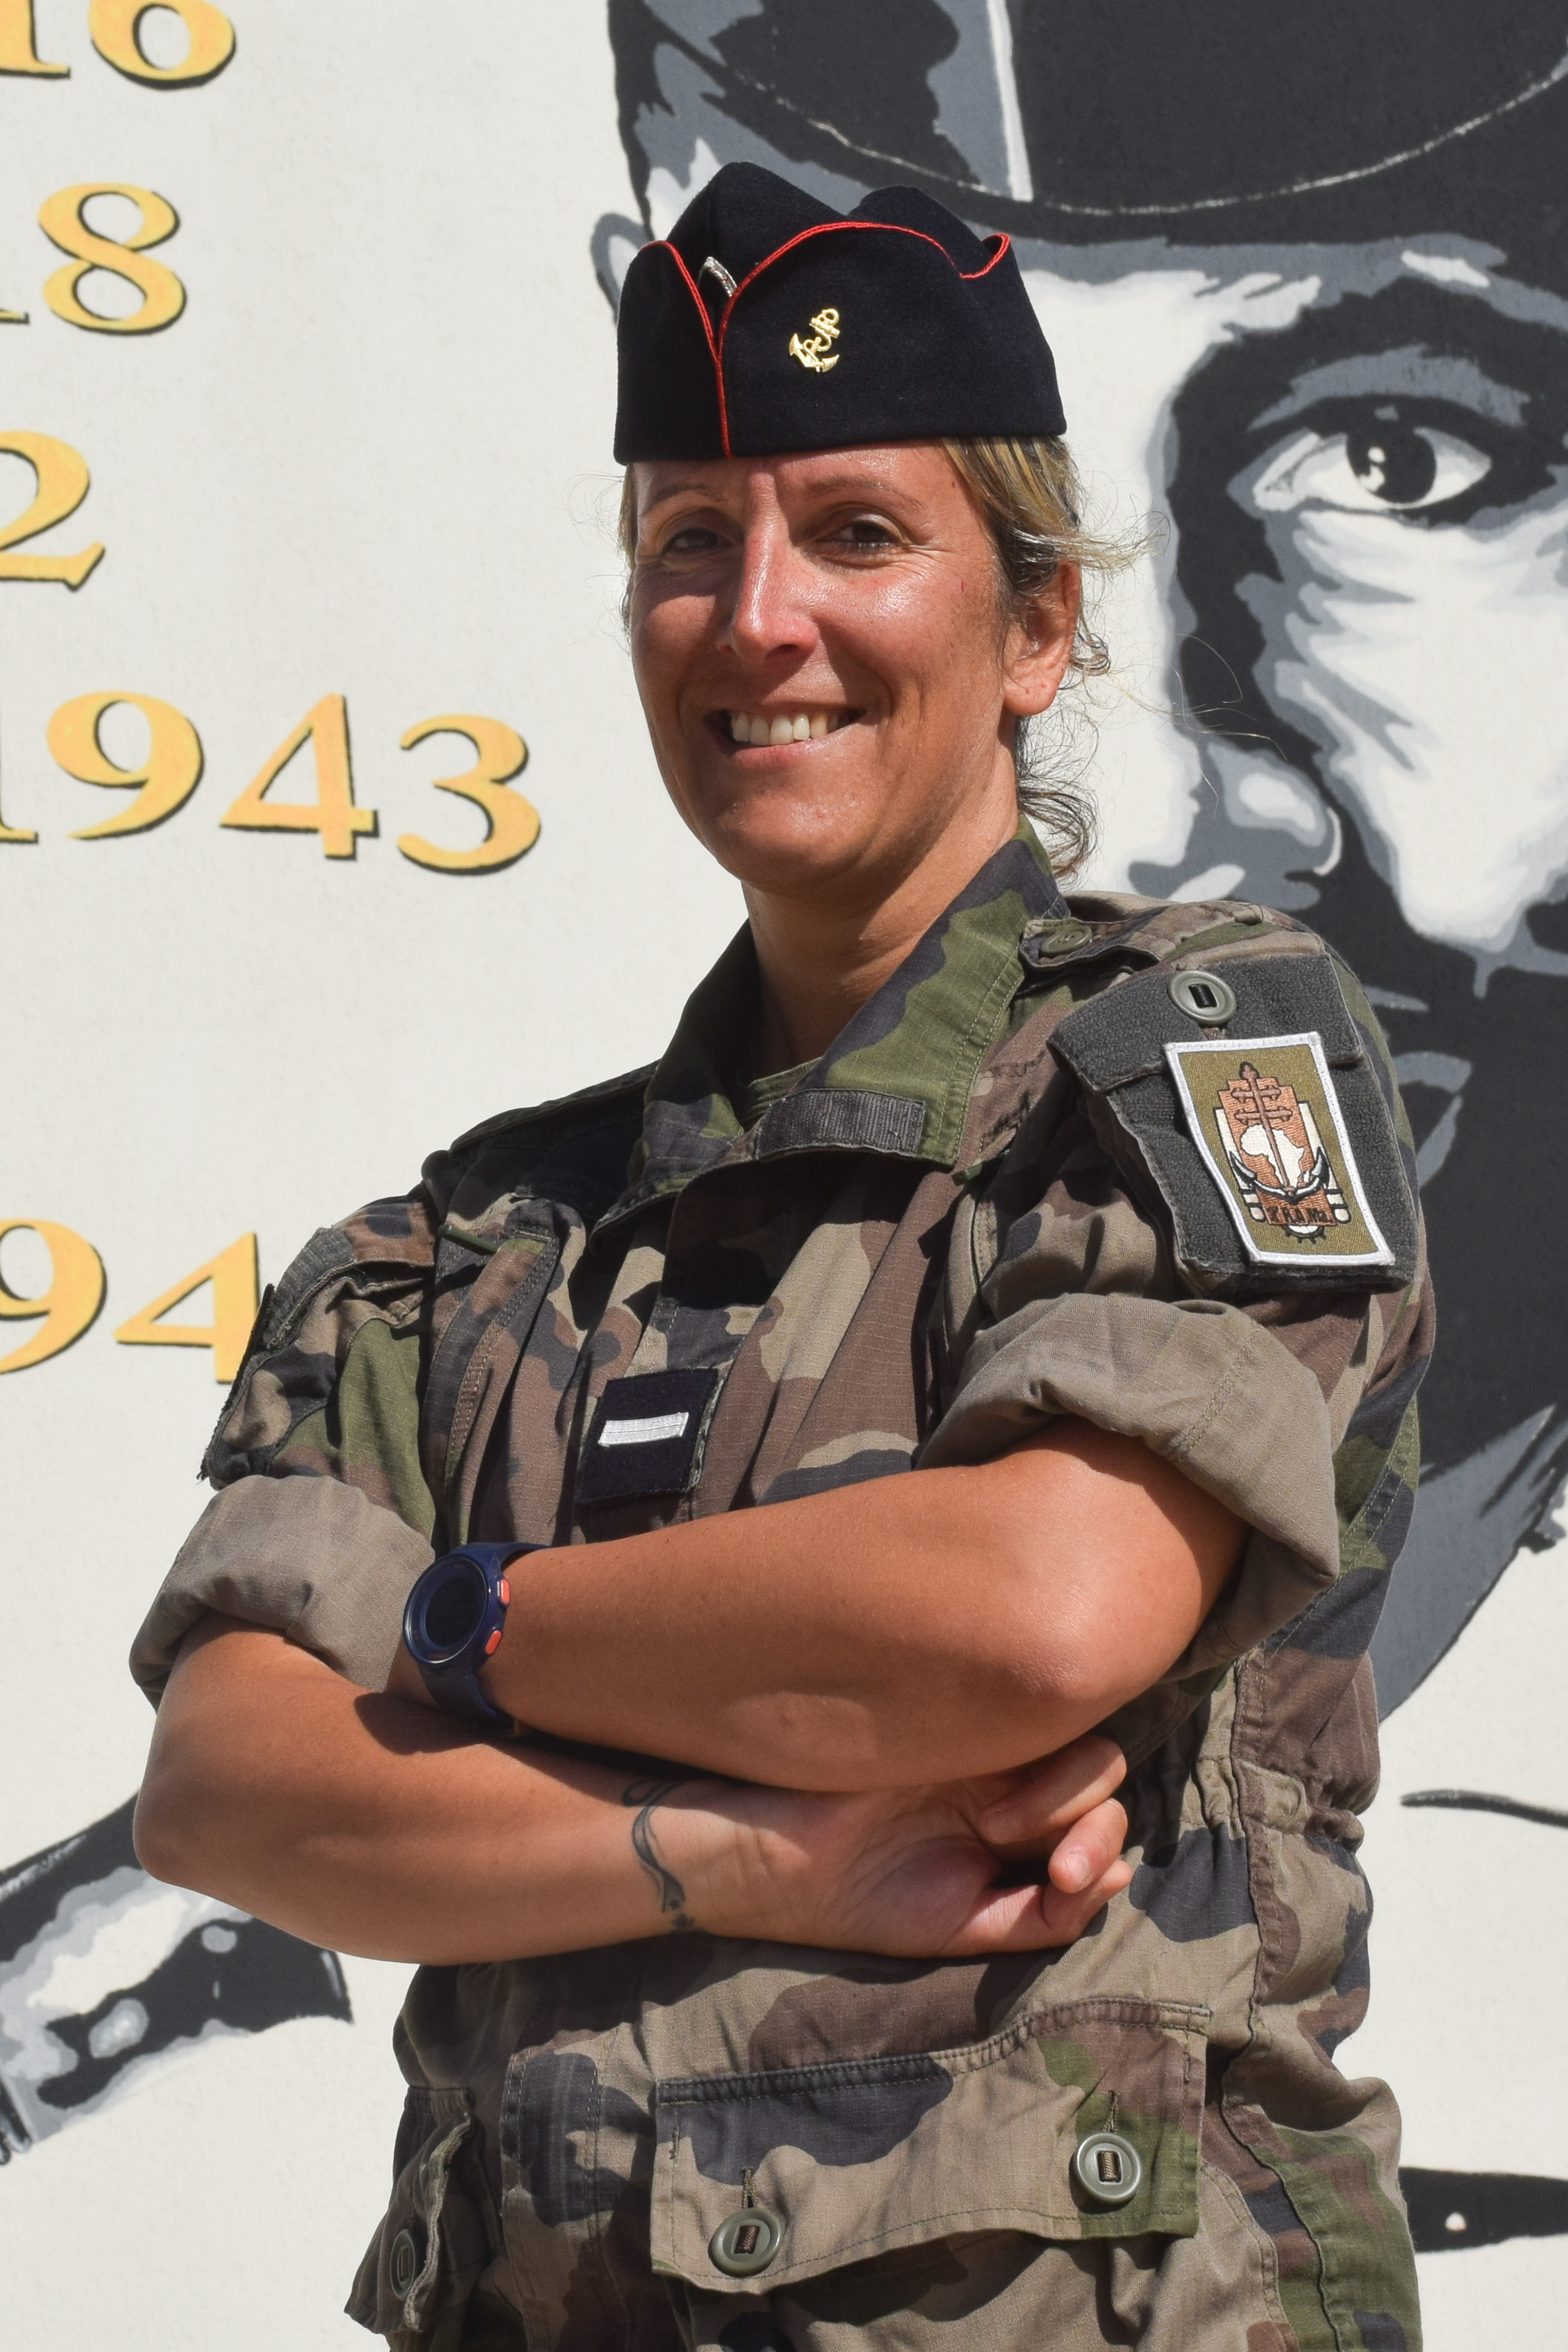 Warrant Officer Erika (last name withheld for security reasons). Photo credit: Ministry of the Armed Forces